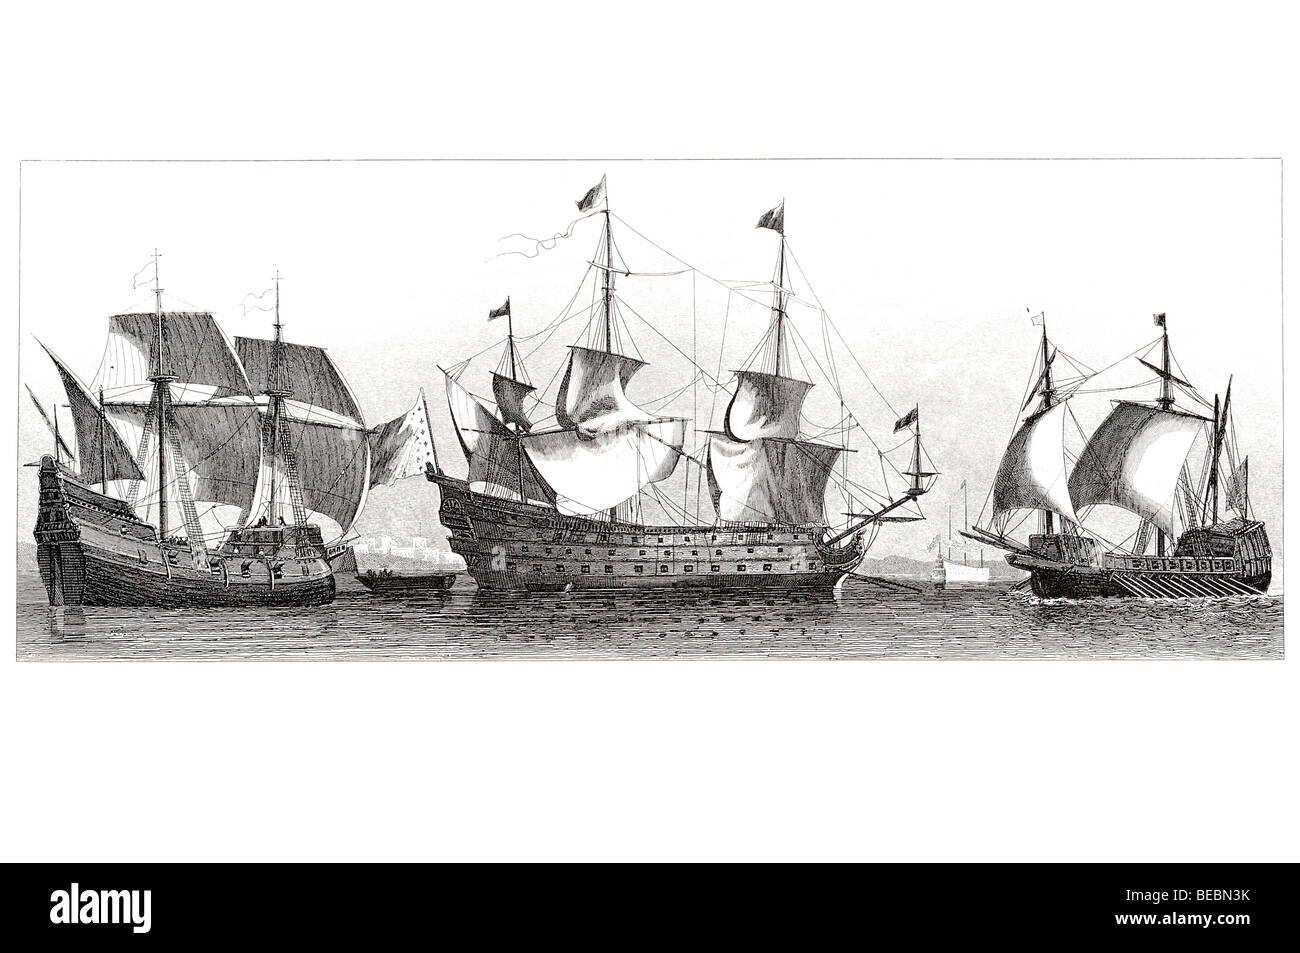 16th century spanish ship stock photos 16th century spanish ship french vessel of the 16th century spanish ship of war soleil royal stock image publicscrutiny Choice Image